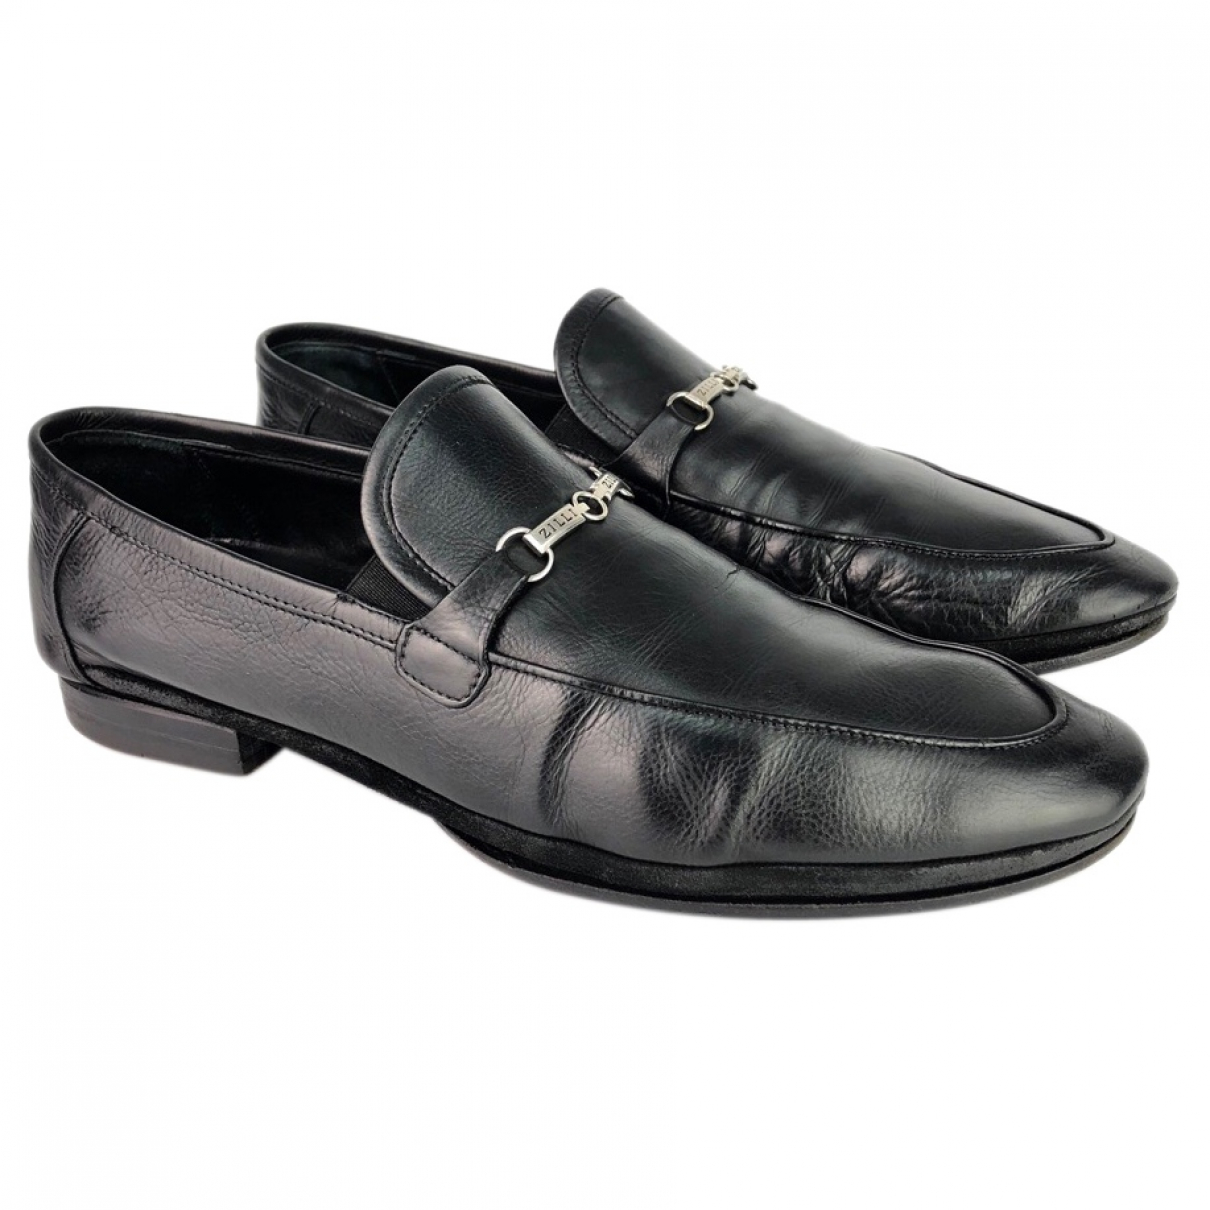 Zilli \N Black Leather Flats for Men 43.5 EU